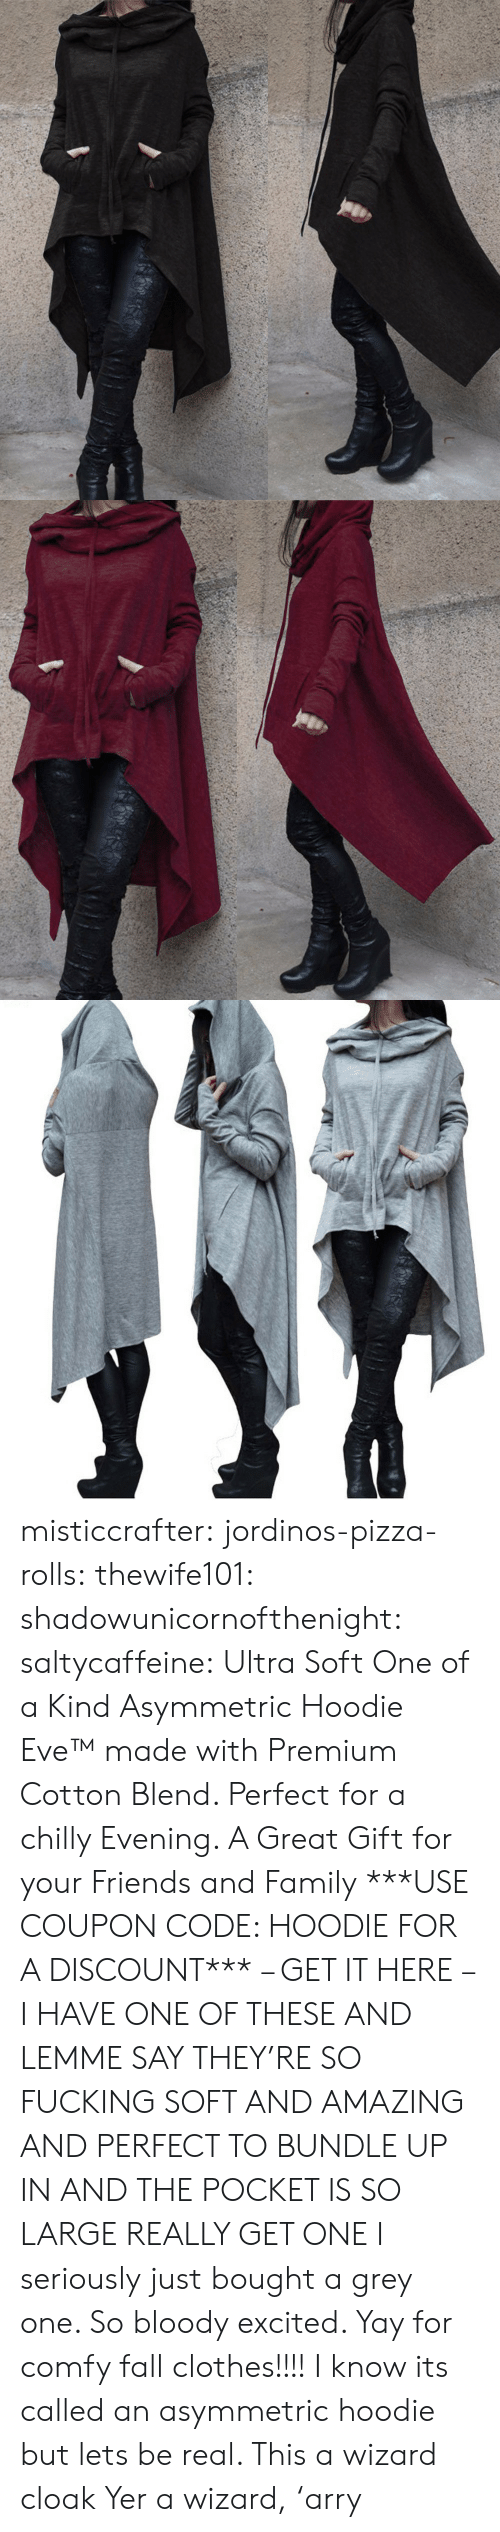 Clothes, Fall, and Family: misticcrafter: jordinos-pizza-rolls:  thewife101:  shadowunicornofthenight:  saltycaffeine:  Ultra Soft One of a Kind Asymmetric Hoodie Eve™made with Premium Cotton Blend. Perfect for a chilly Evening. A Great Gift for your Friends and Family ***USE COUPON CODE: HOODIE FOR A DISCOUNT*** – GET IT HERE –   I HAVE ONE OF THESE AND LEMME SAY THEY'RE SO FUCKING SOFT AND AMAZING AND PERFECT TO BUNDLE UP IN AND THE POCKET IS SO LARGE REALLY GET ONE   I seriously just bought a grey one. So bloody excited. Yay for comfy fall clothes!!!!    I know its called an asymmetric hoodie but lets be real. This a wizard cloak  Yer a wizard,'arry